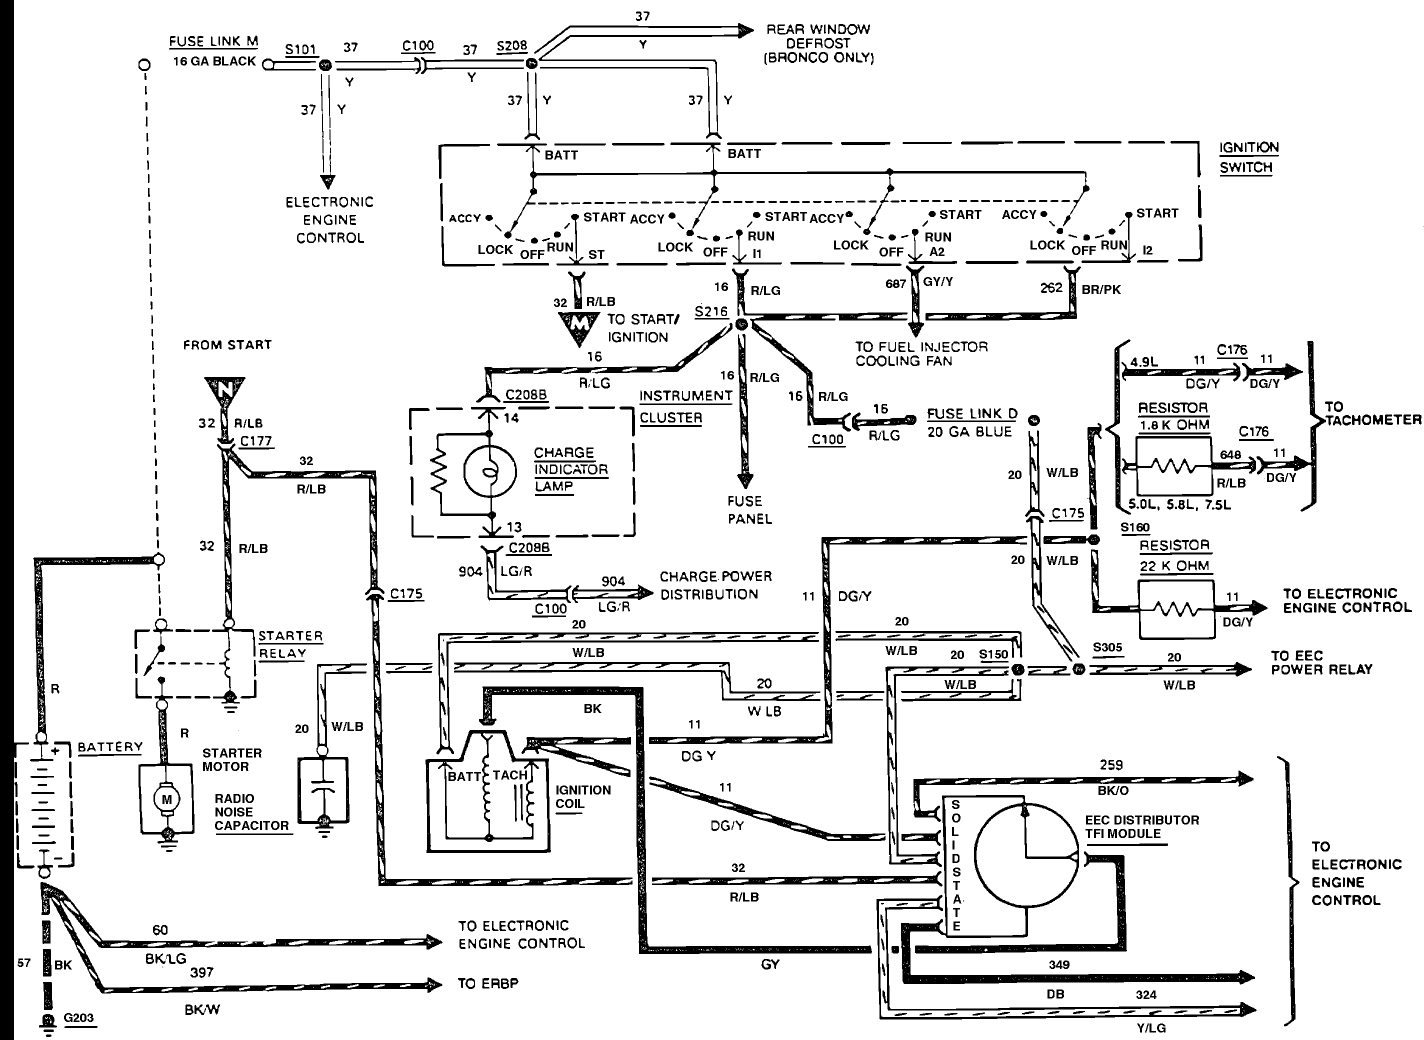 APZ_000] 95 Ford Wiring Diagram | wiring diagram APZ_000 |  circuit-approve.centrostudimad.it | Ford F250 Wiring Diagram |  | centrostudimad.it